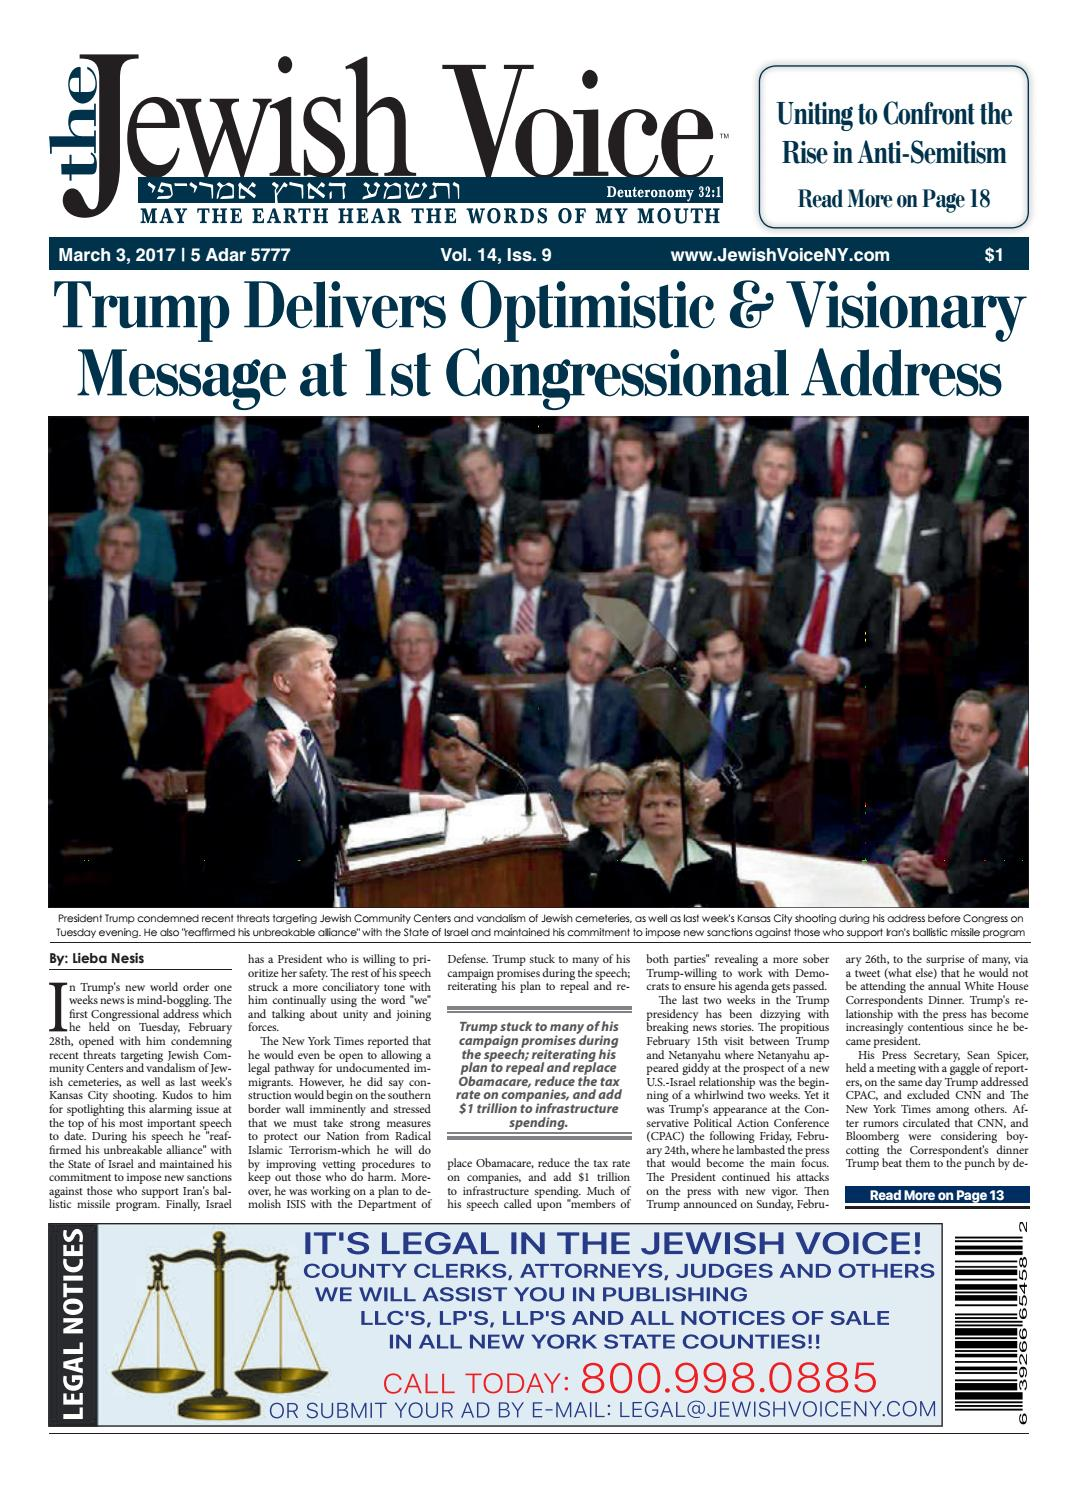 The Jewish Voice | MARCH 3, 2017 by Mike Kurov - issuu